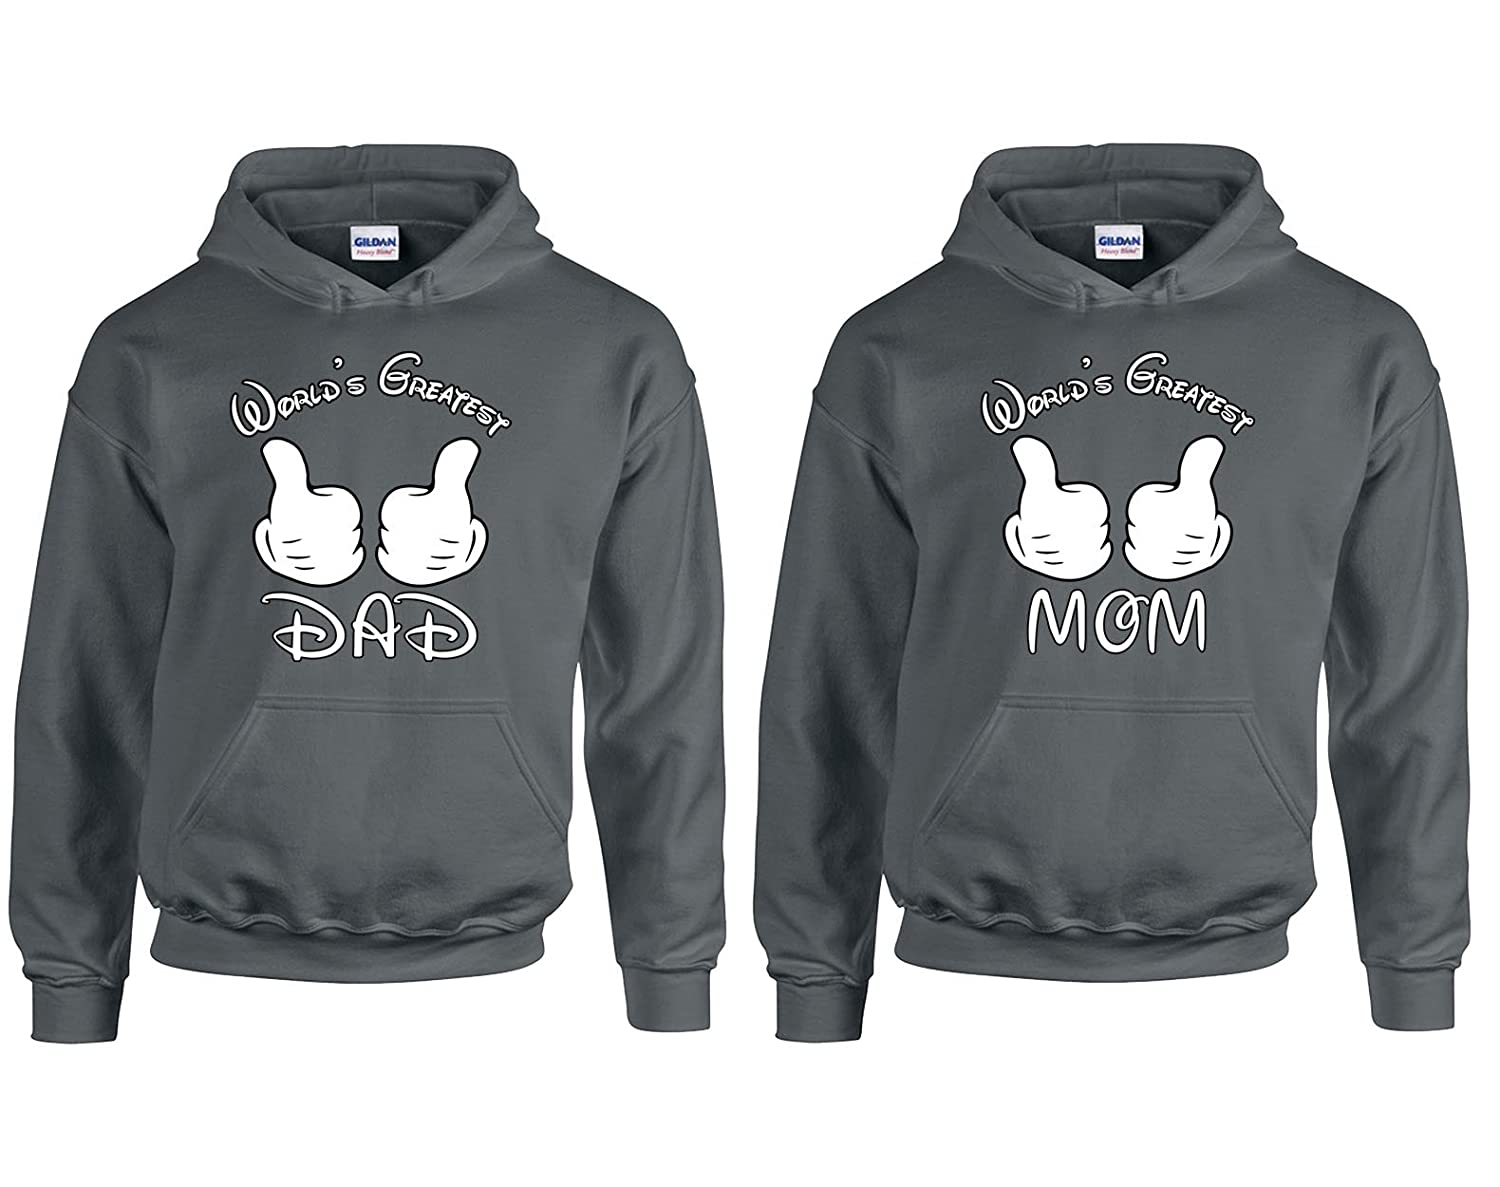 Falcons Shop Worlds Greatest Dad and Mom Valentines Day Special Hoodie Hooded Sweatshirt 1